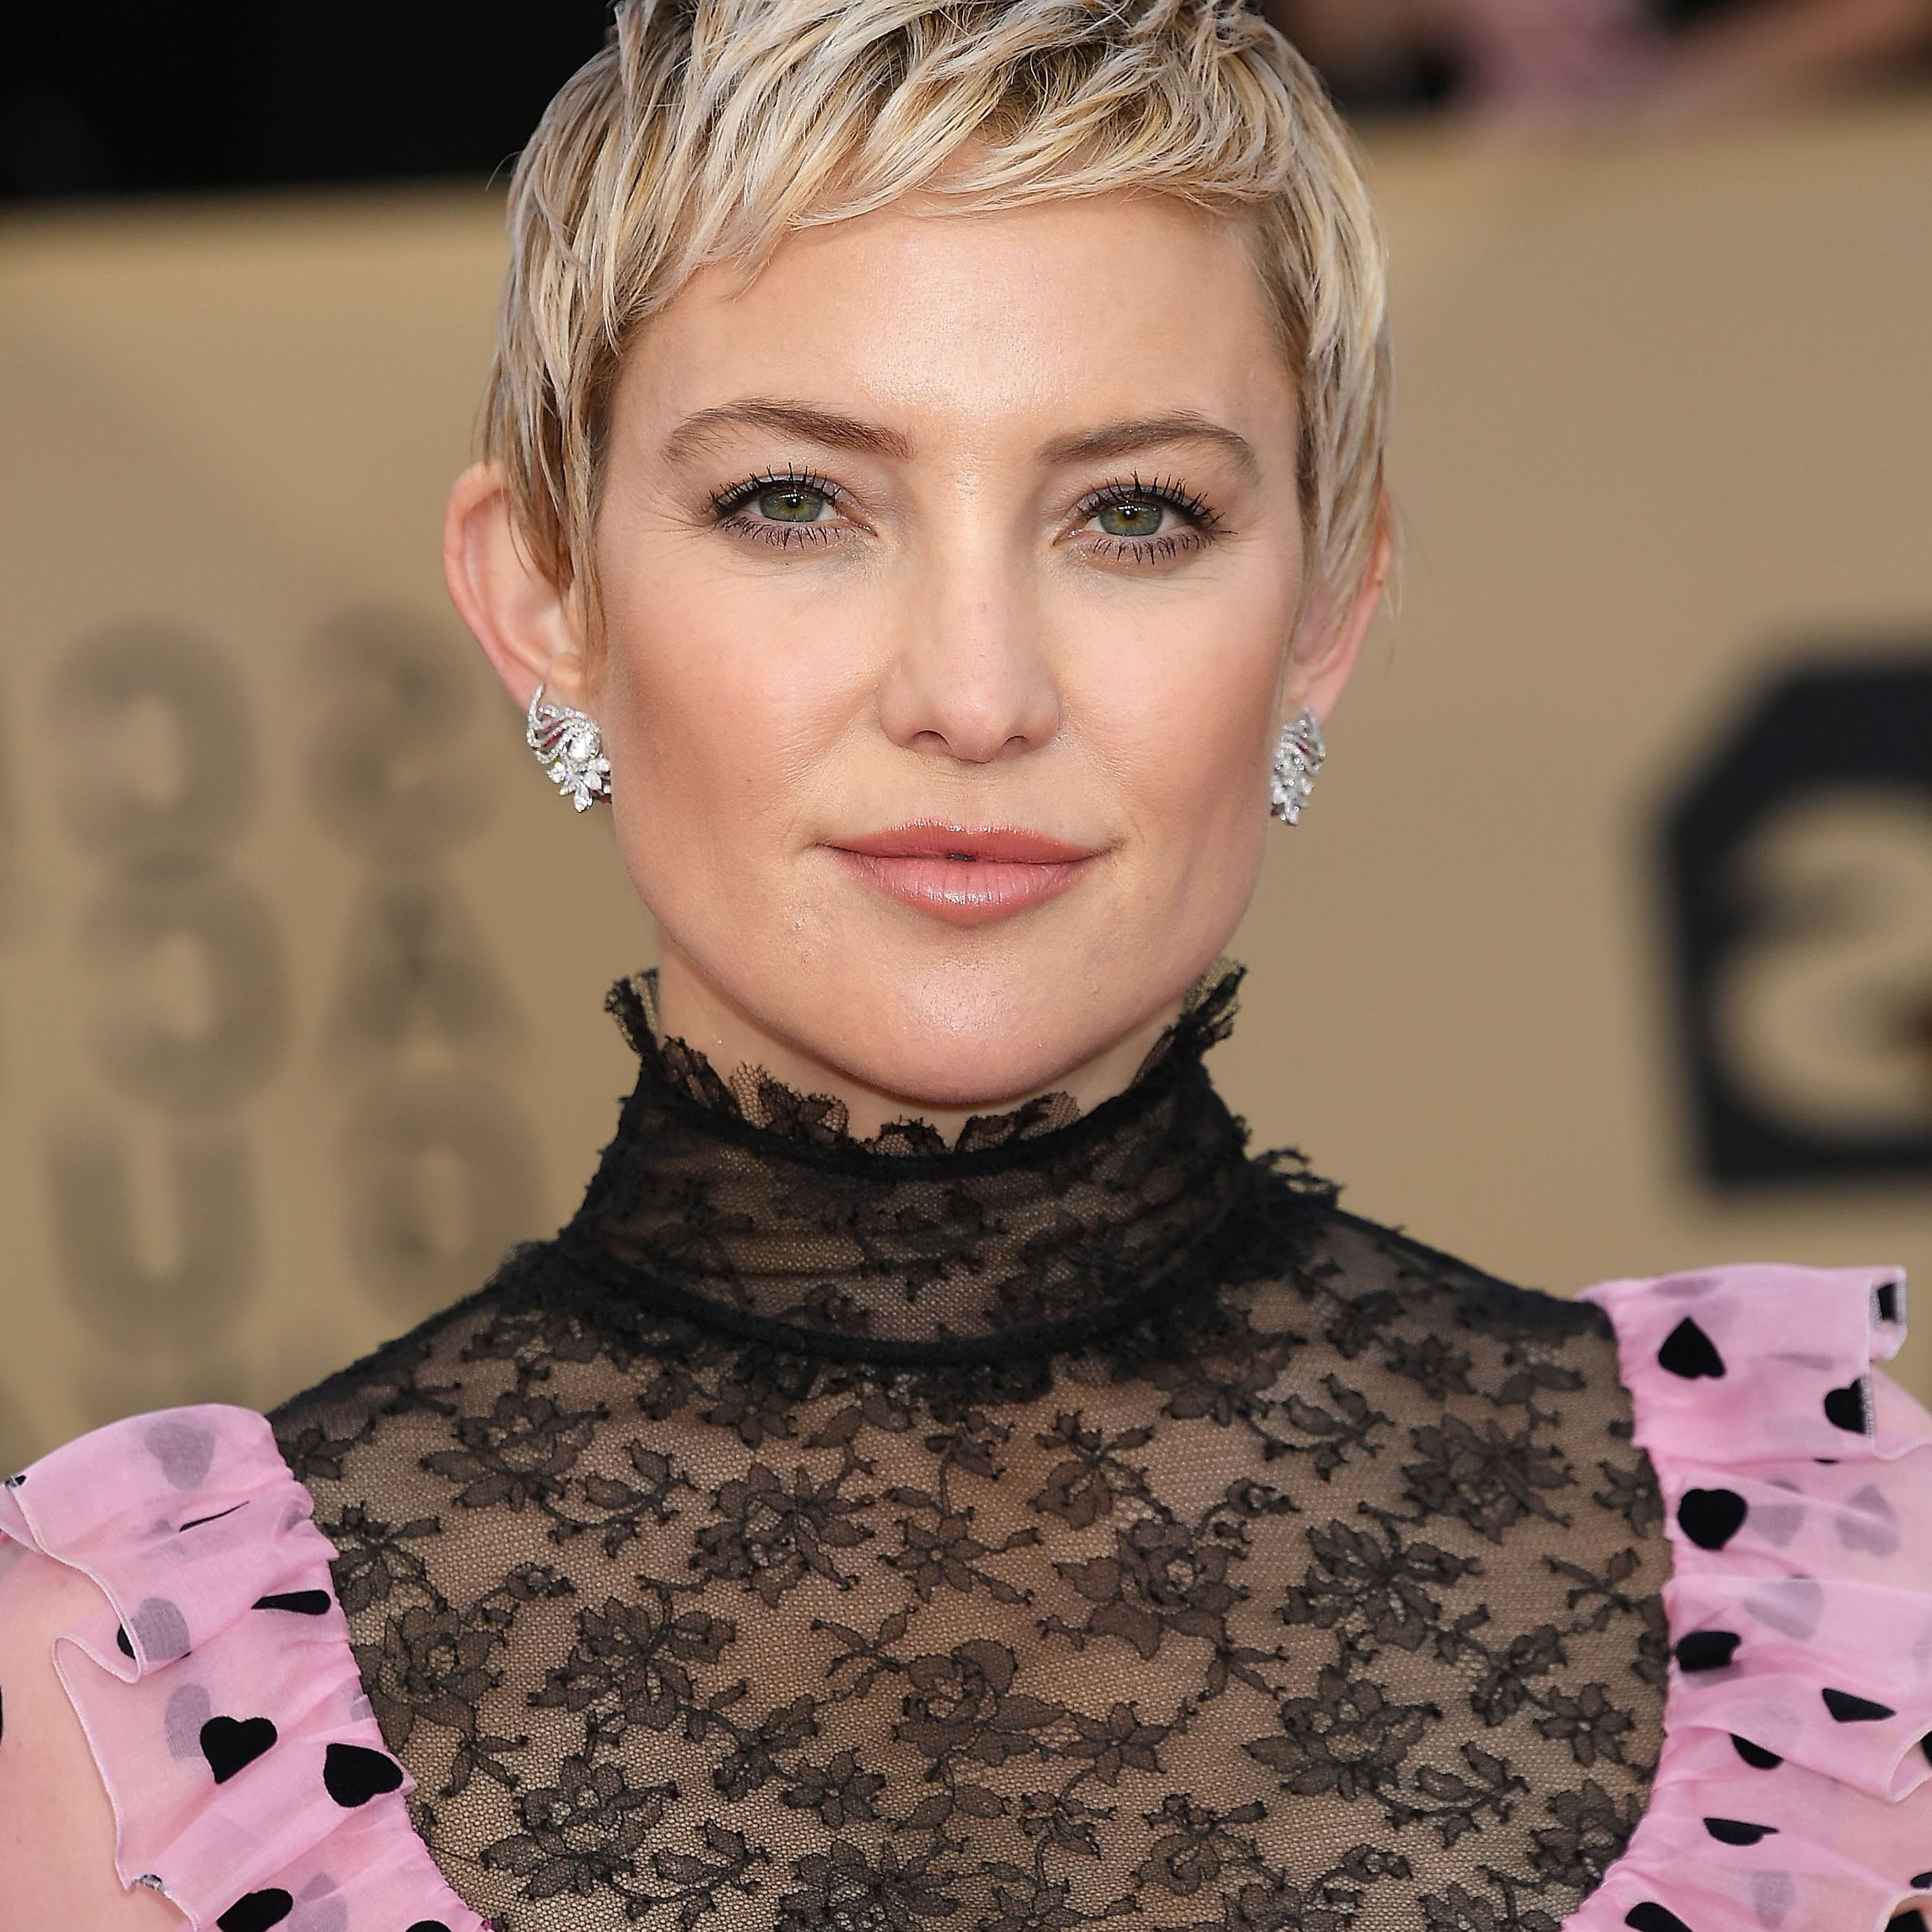 20 Classic And Cool Short Hairstyles For Older Women Pertaining To Current Amber Undercut Hairstyles For Long Face (View 2 of 20)